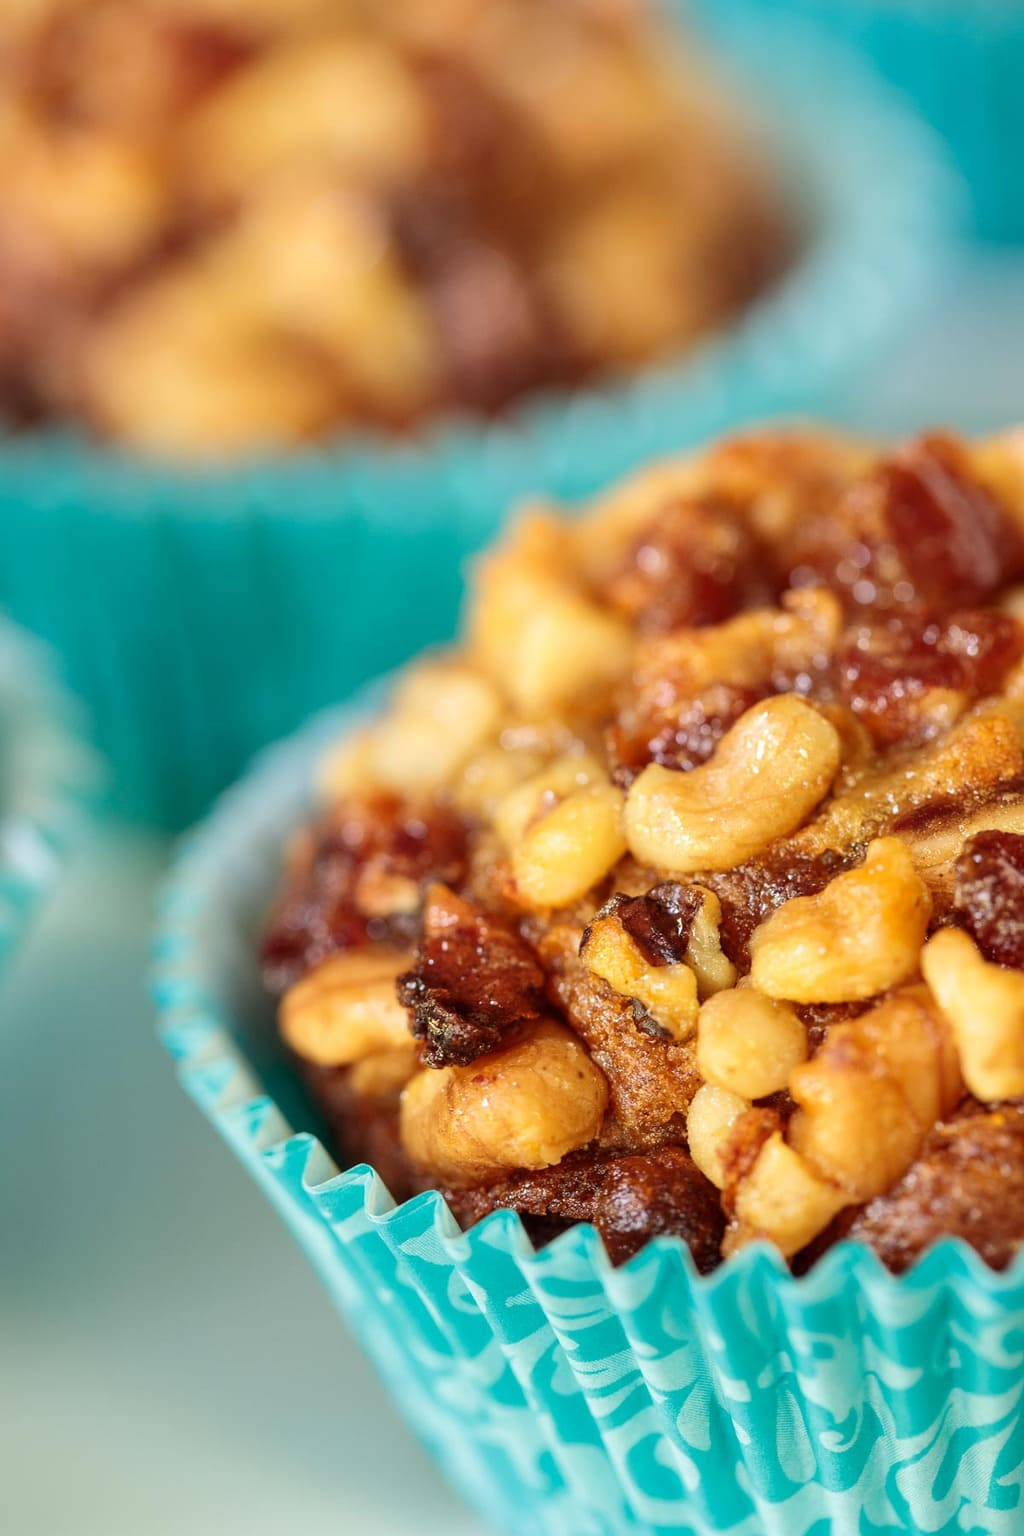 Ultra closeup of a plate of Walnut Date Banana Muffins in turquoise patterned cupcake liners.